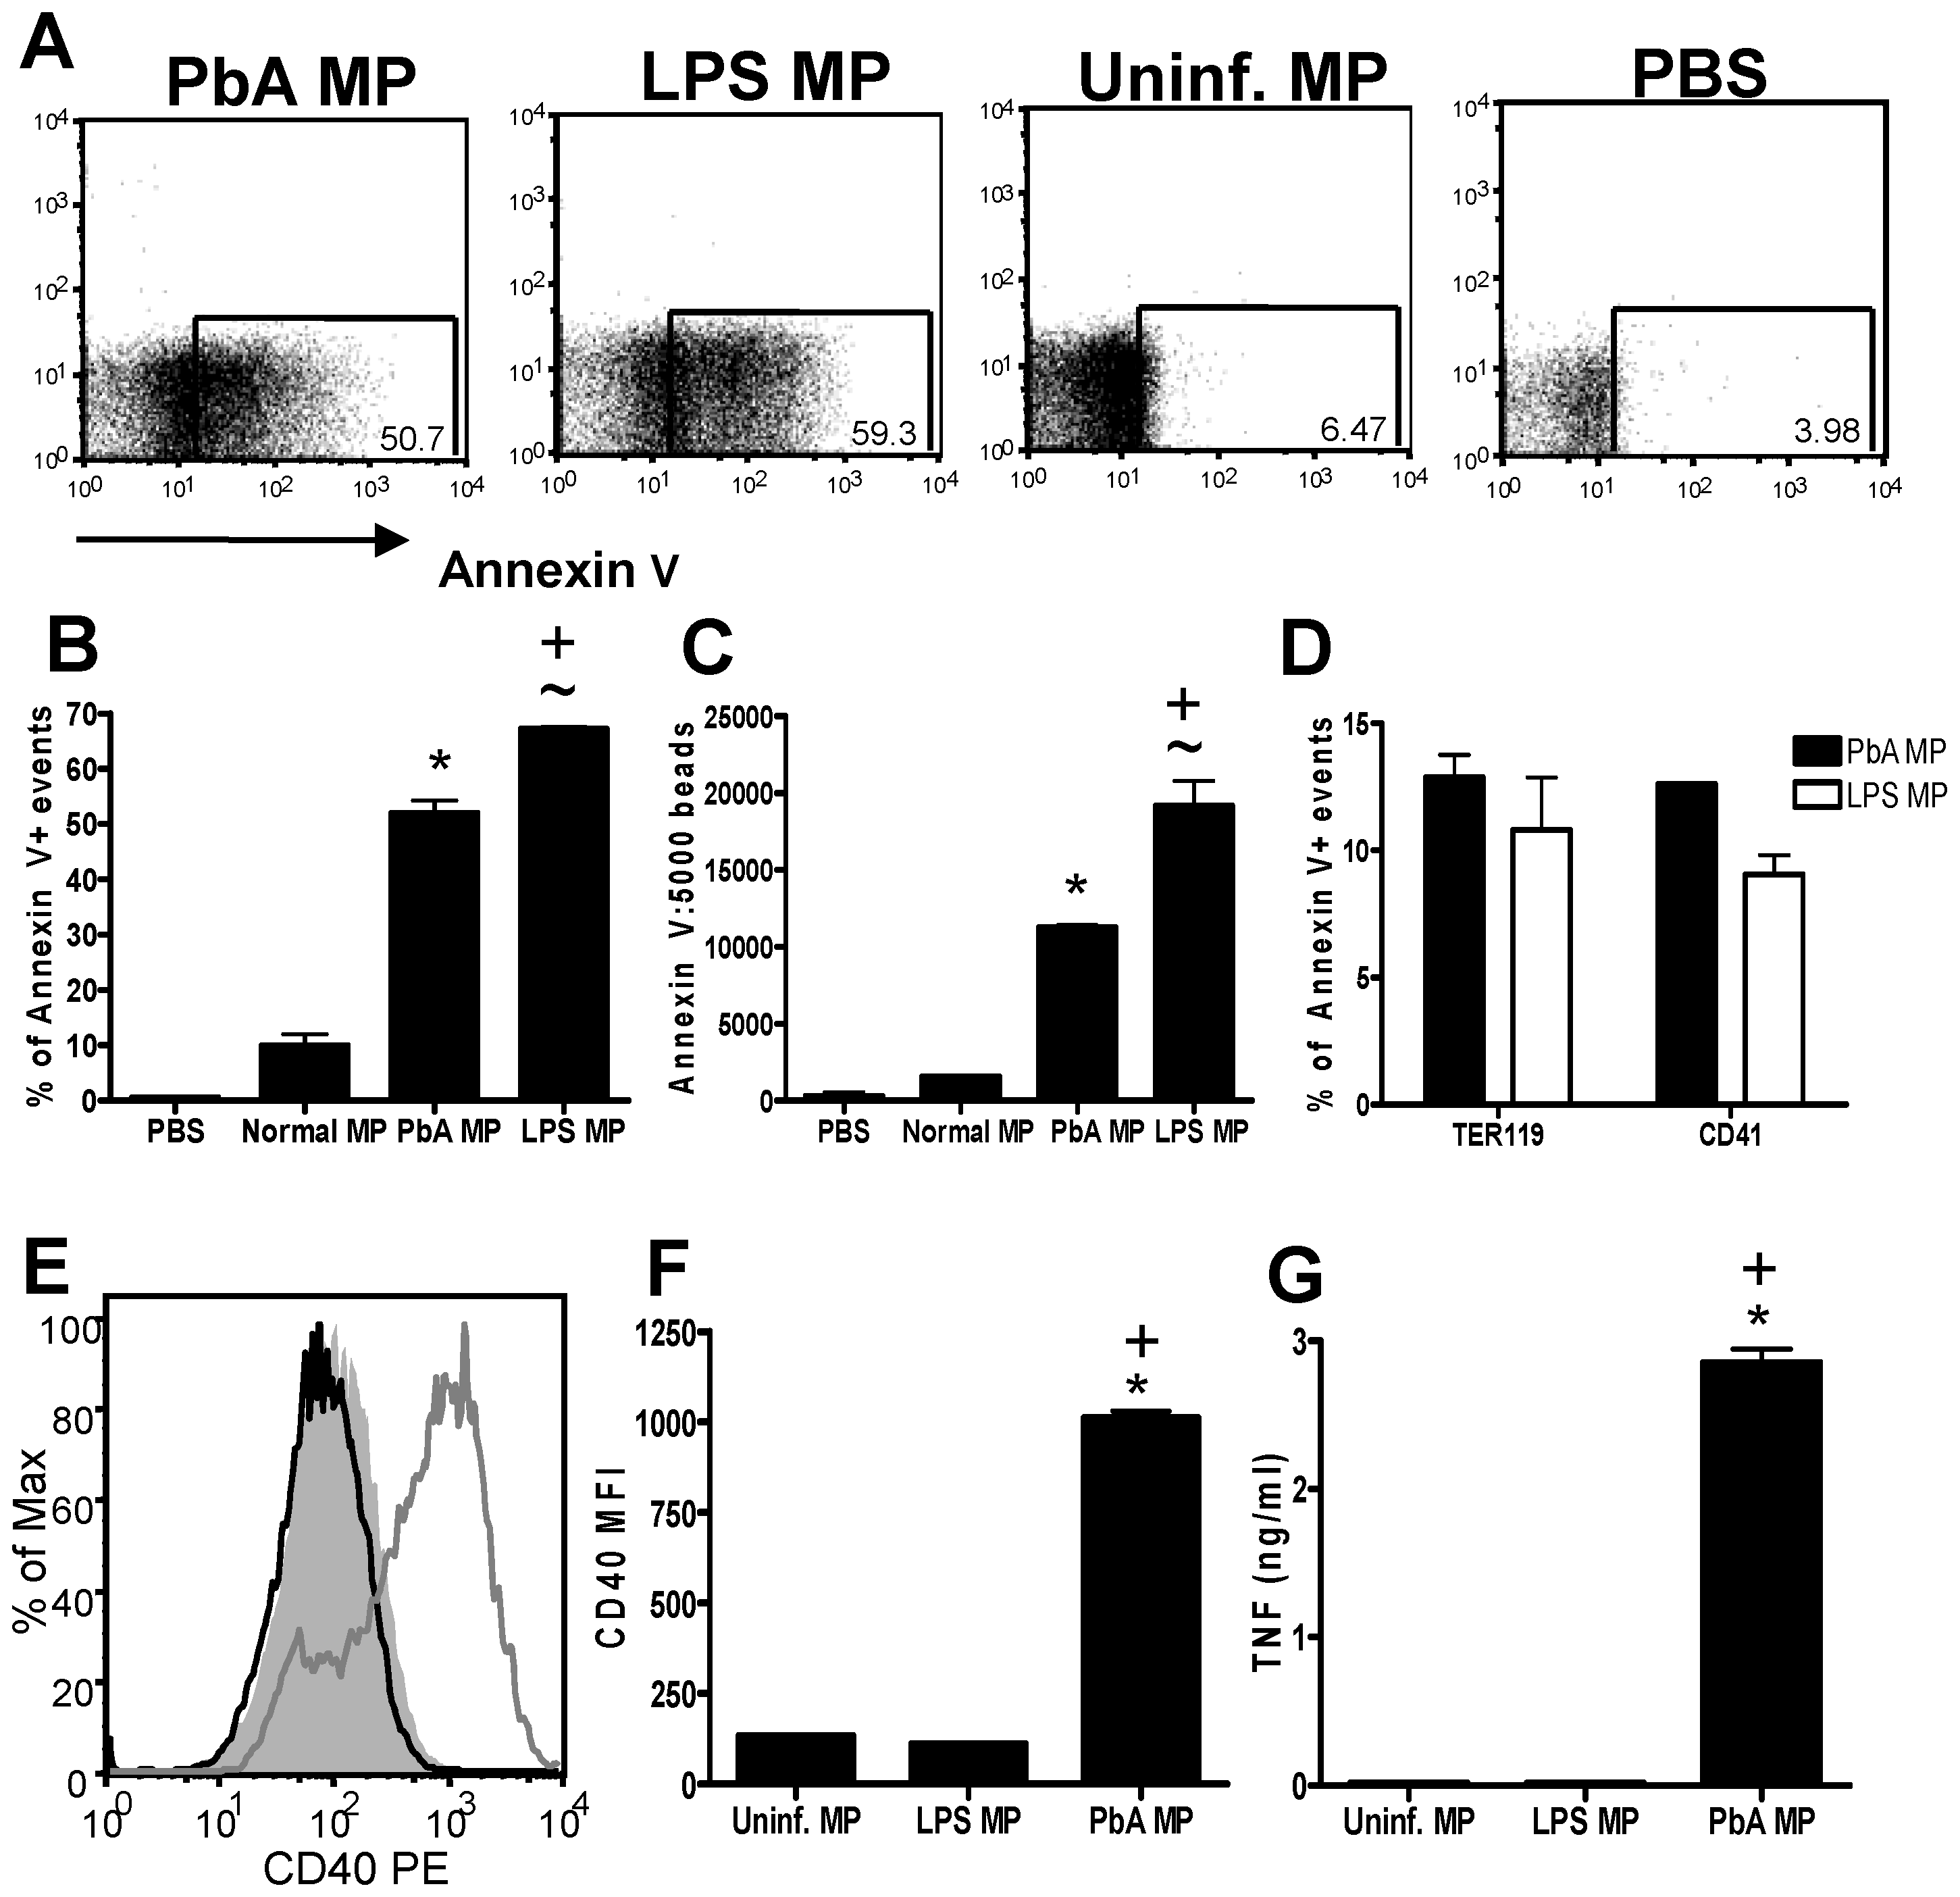 LPS-inflammation induced MPs do not activate macrophages.